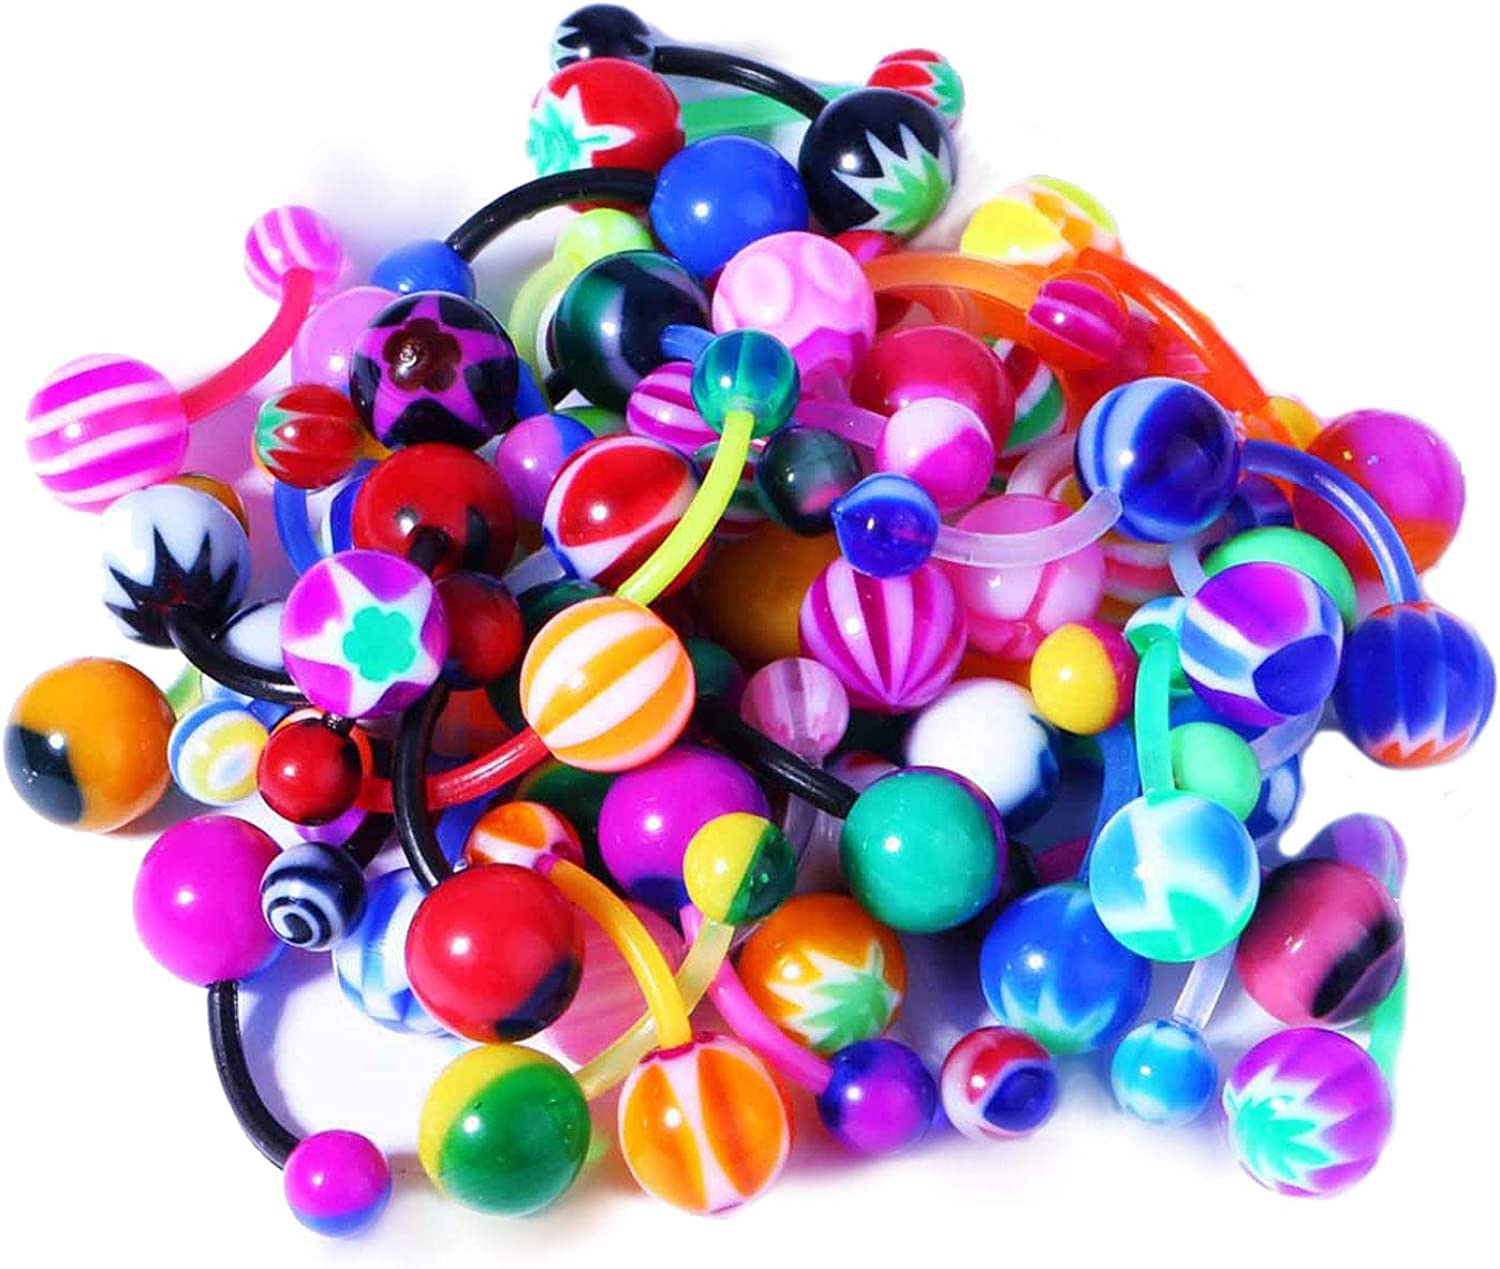 BodyJ4You 15PC Belly Button Rings Banana Barbells 14G Steel Flexible Bar Mix Color Body Jewelry